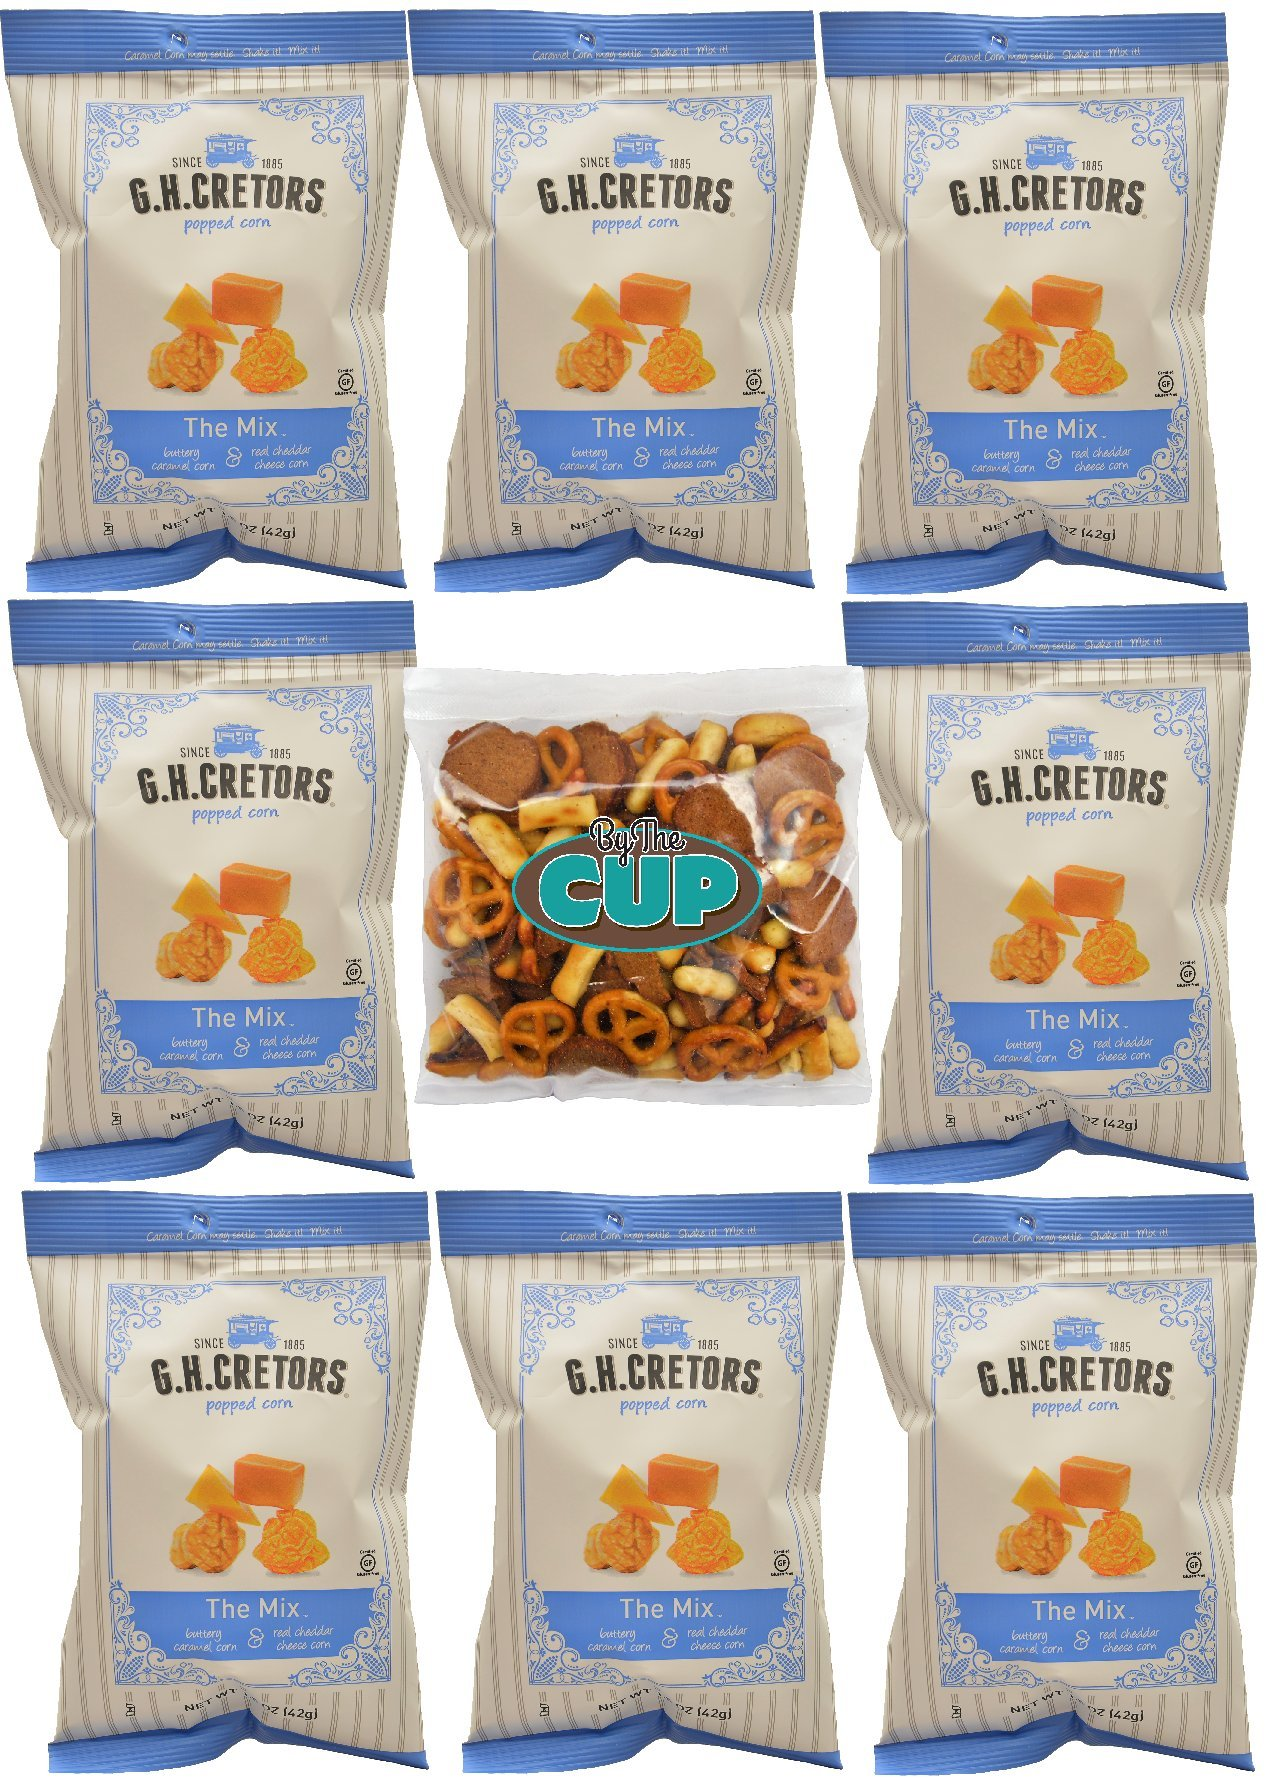 G.H. Cretors The Mix - 1.5 Ounce Single Serve Bags of Caramel and Cheddar Popcorn (Pack of 8) - With a 4 Ounce Bag of By The Cup Snack Mix